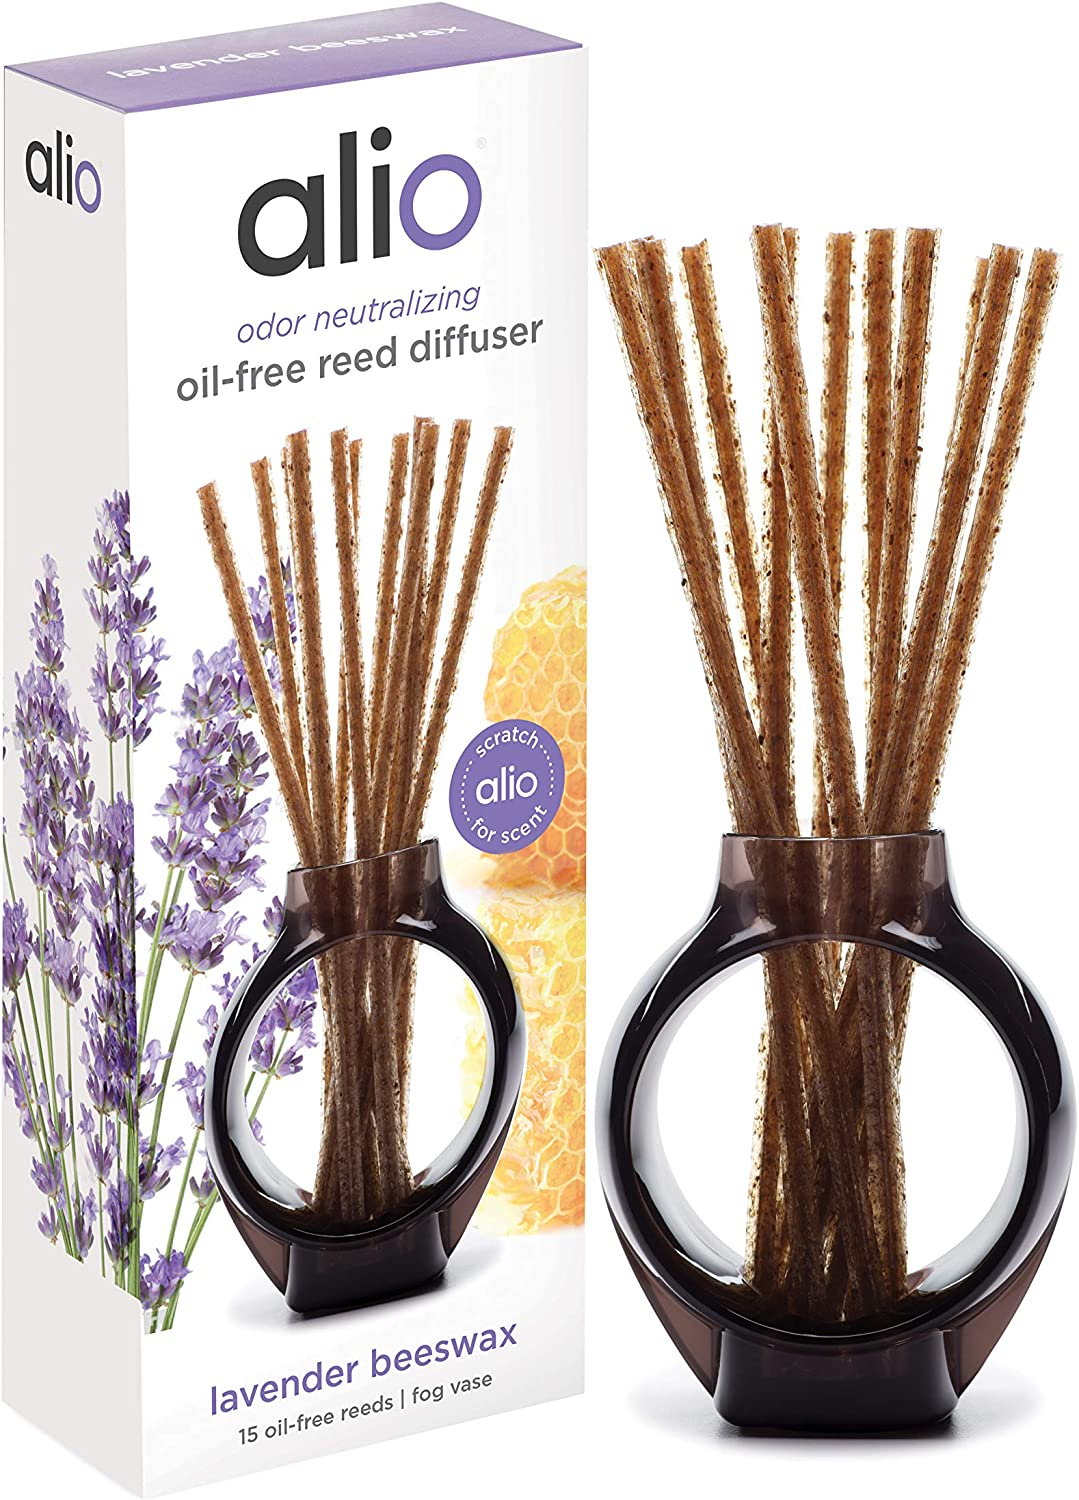 ALIO Oil-Free Reed Diffuser – Lavender Beeswax – Odor Neutralizing with Subtle Scent, Pet and Eco Friendly – Set of 15 Oil-Free Reeds and Signature Vase – No Oils, Sprays, Plug-Ins, or Flames Required